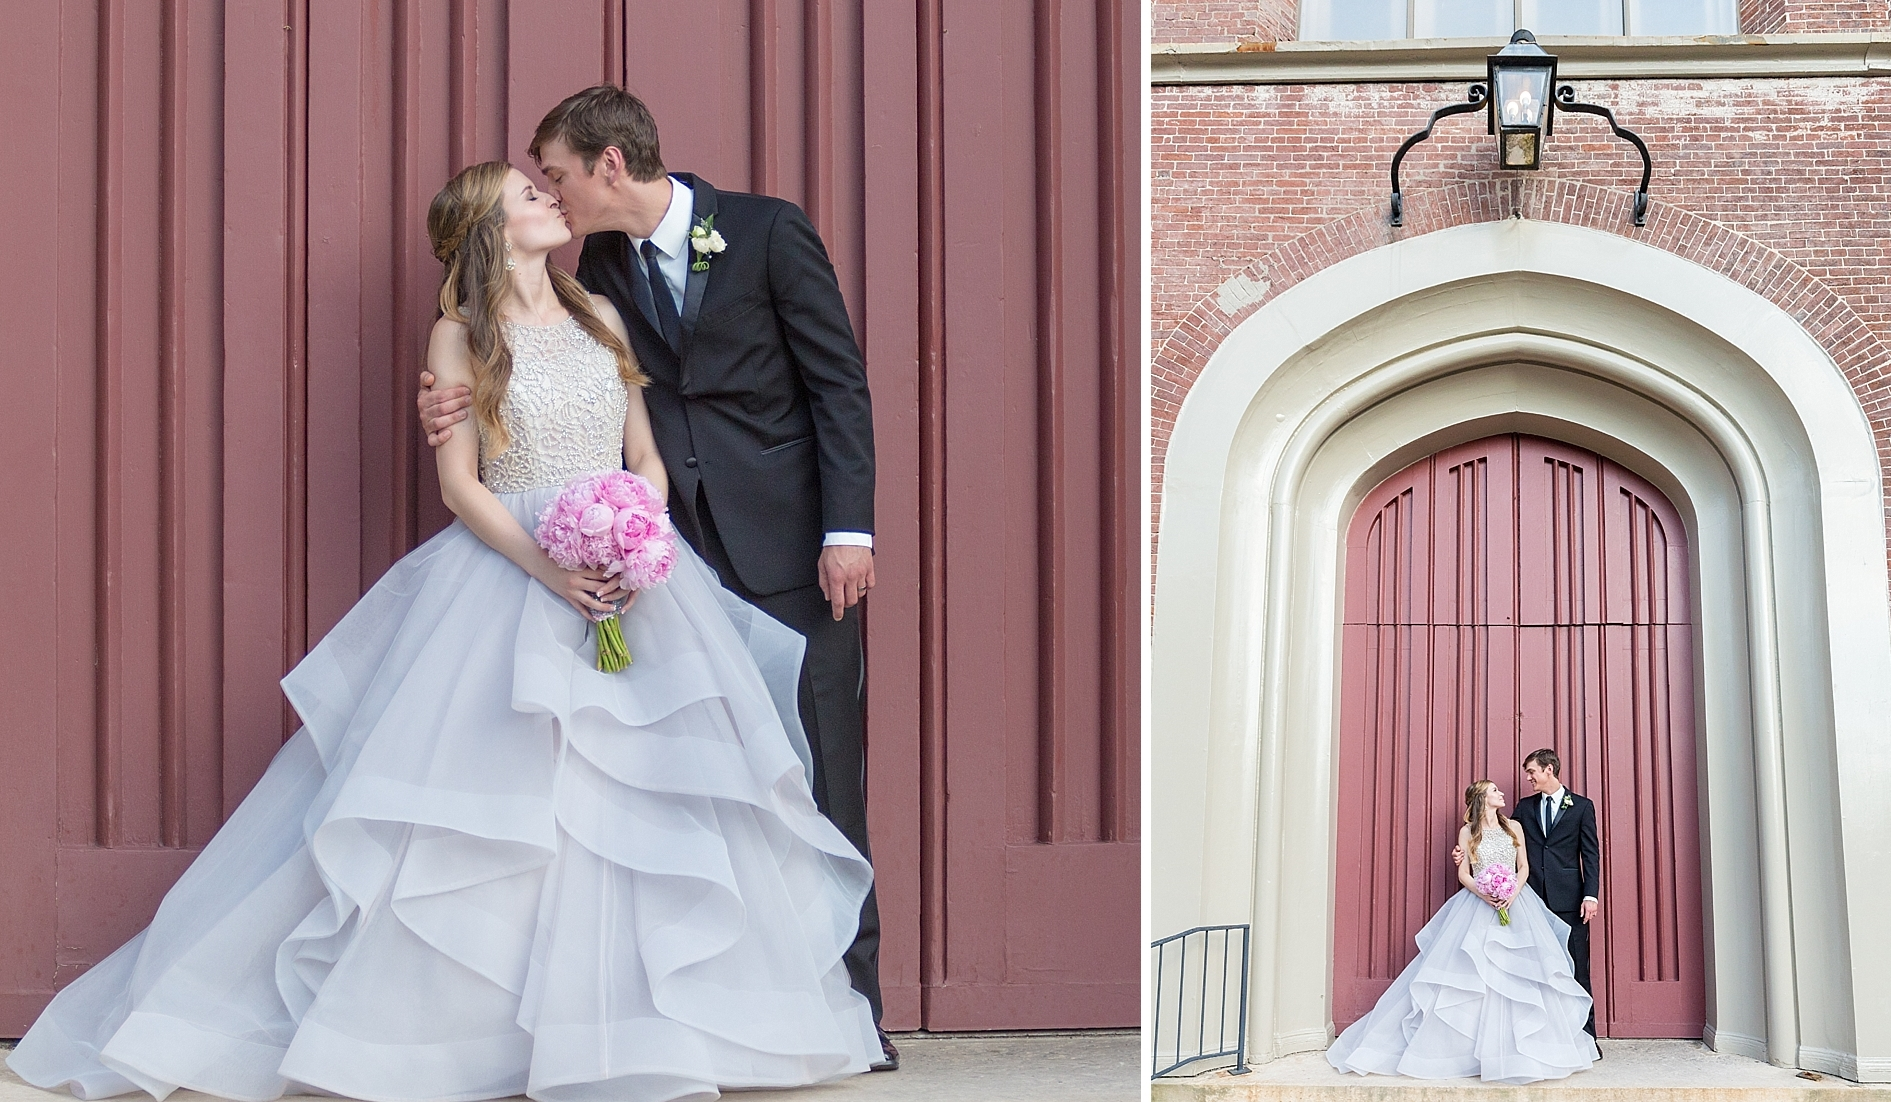 Dori Gown || Photos by Kevin & Anna Photography || Real Bride, Madison